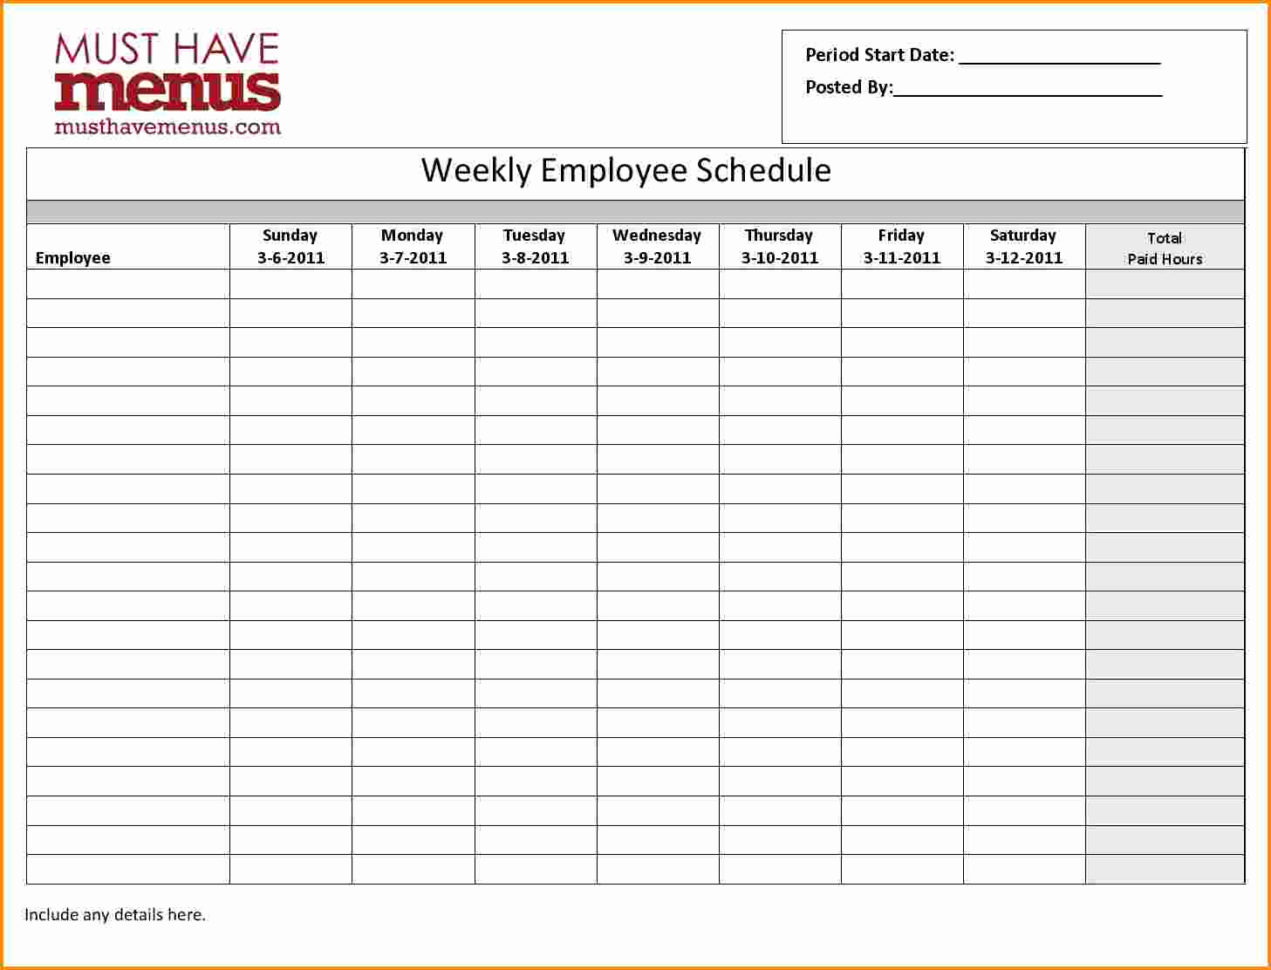 Weekly Employee Schedule Template 7 Monthly Employee Schedule Intended For Monthly Employee Schedule Template